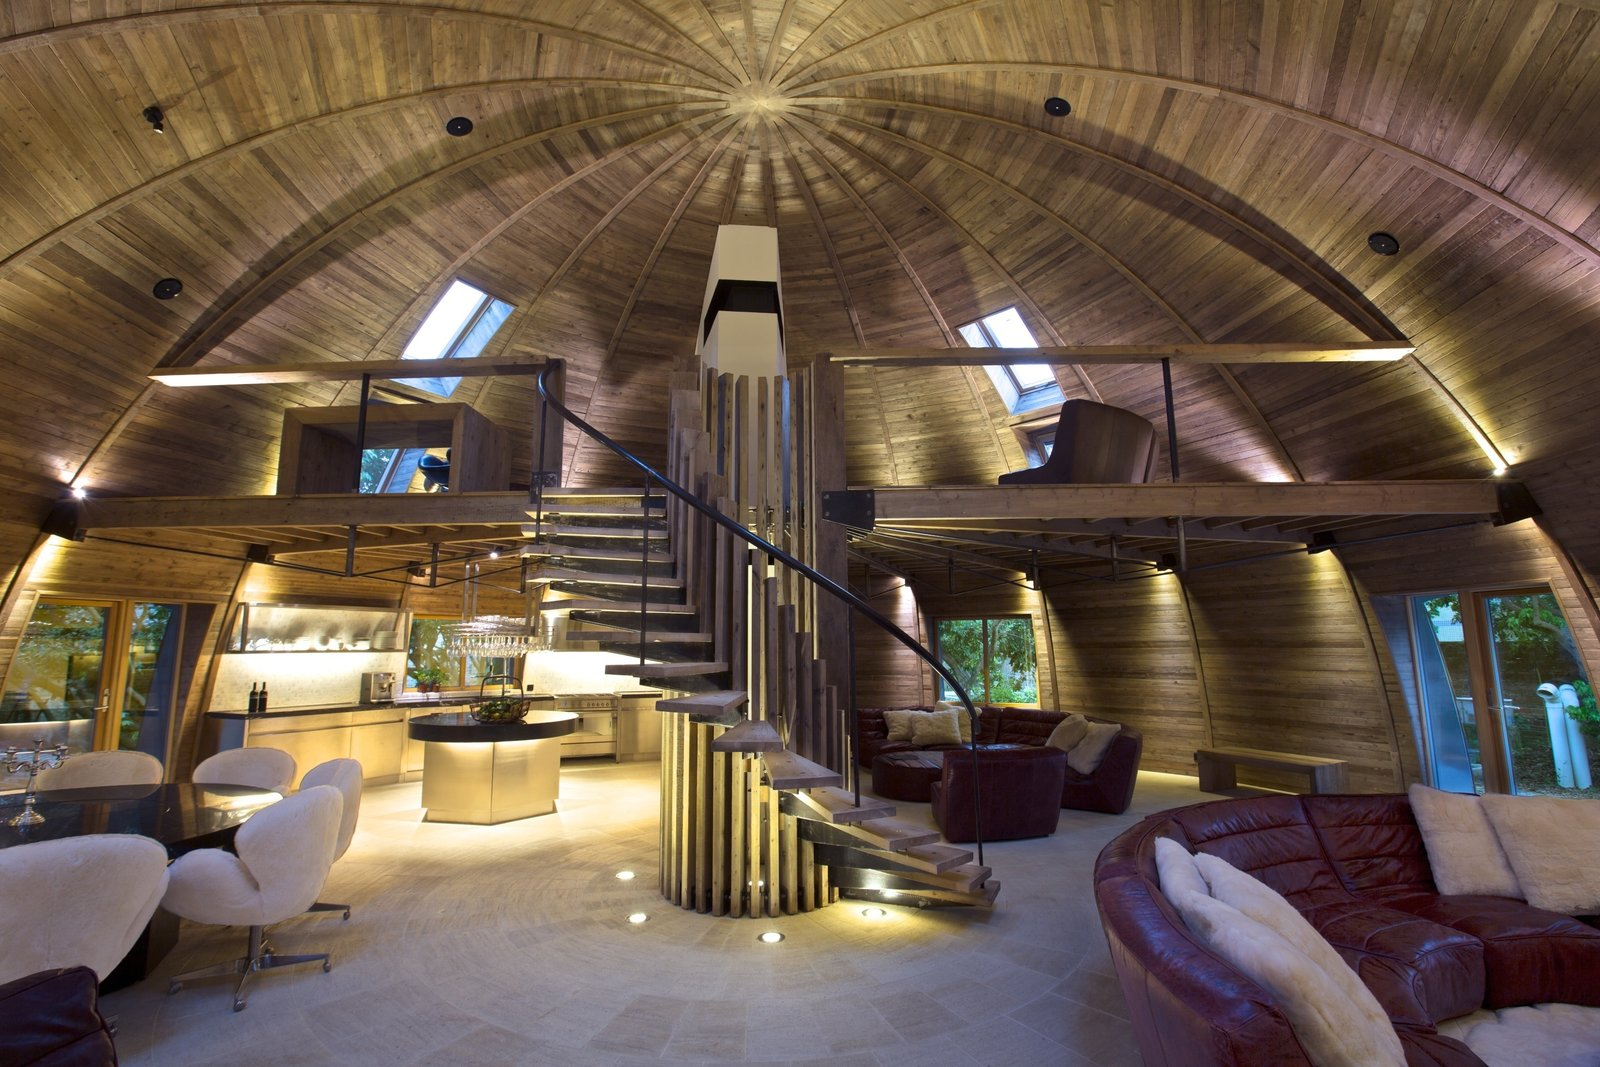 The Dome Home is divided into separate areas where designers can gather or break off to explore ideas. In the loft, a wooden desk blends seamlessly into its wooden environs. Meanwhile, on the lower level Timothy Oulton Shabby sofas with cushions made of real sheepskin off-cuts provide a comfortable place to congregate.  Photo 3 of 8 in A British Furniture Brand Built This Round Village in China